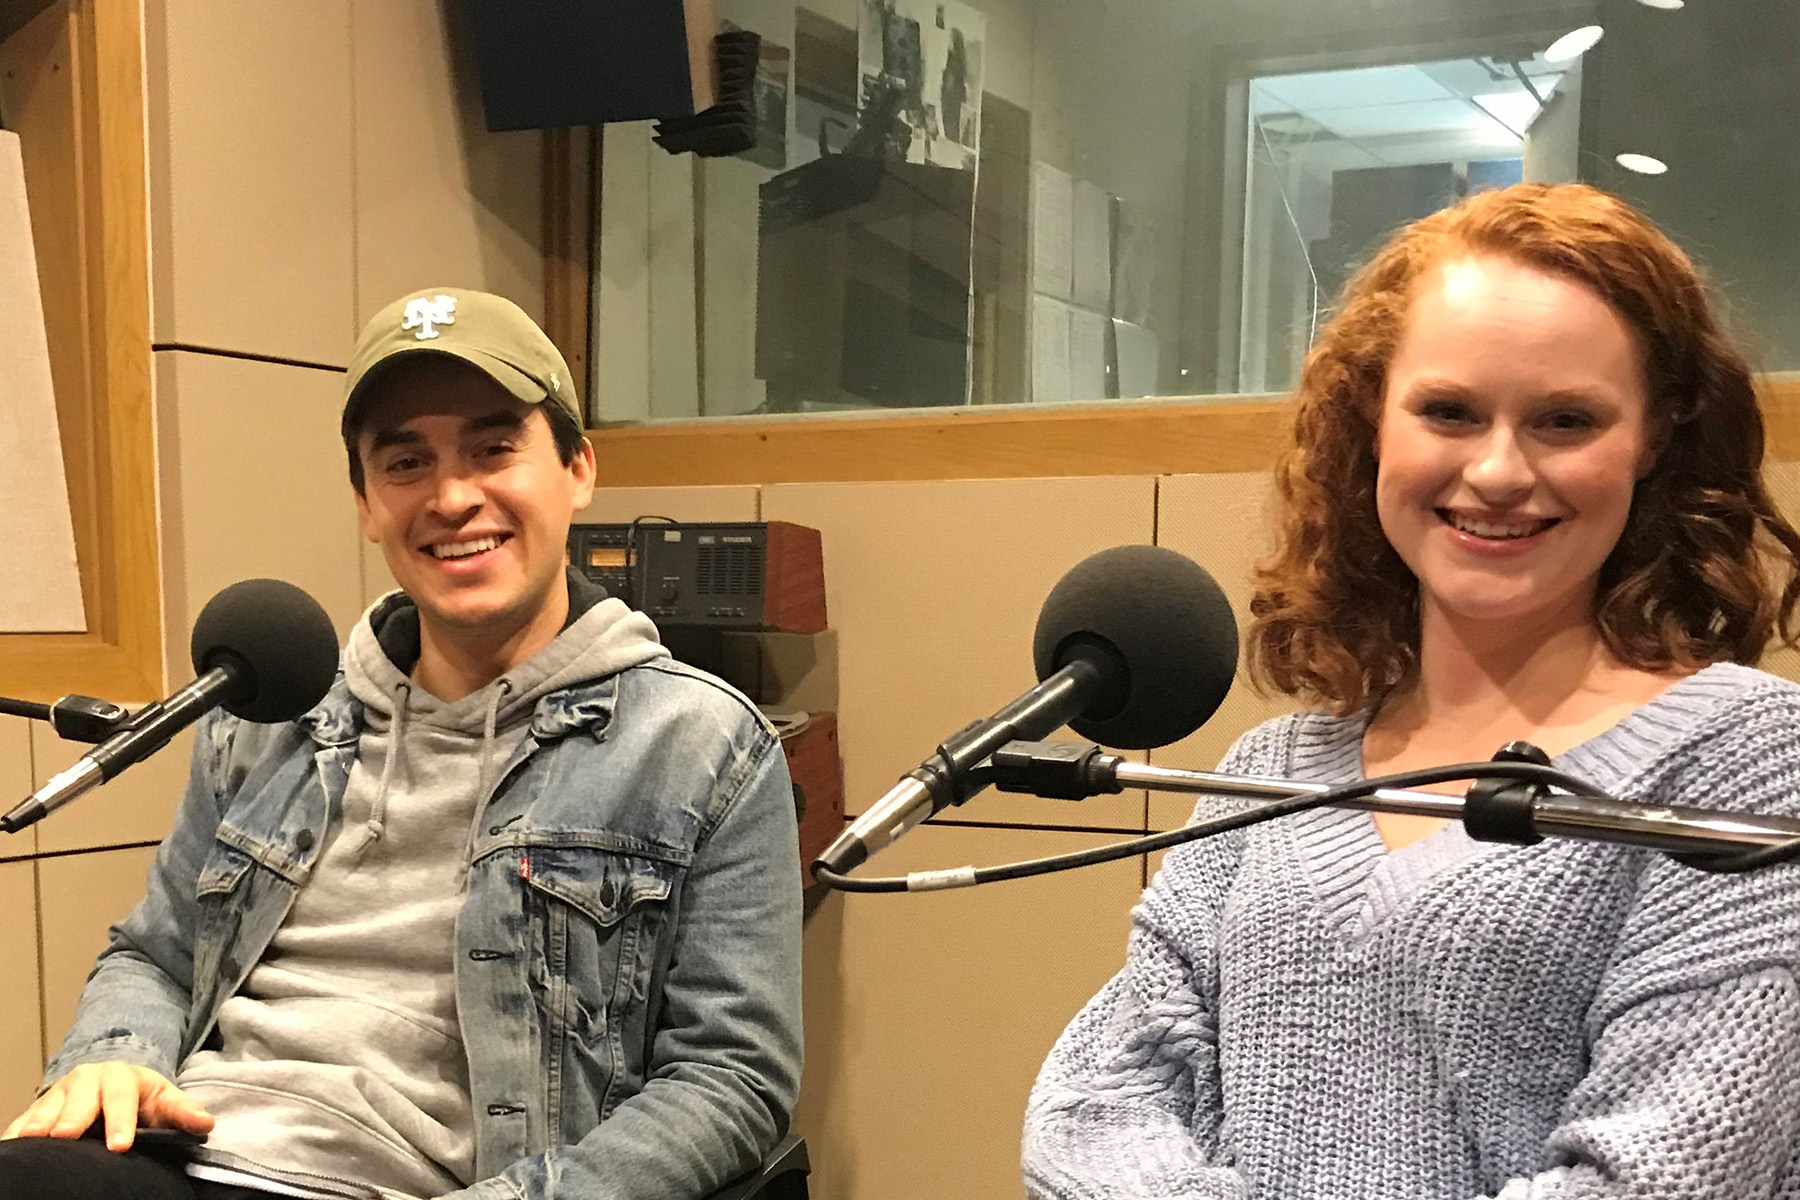 Julian Diaz-Granados, the leader of the newsies with Katie Swaney, the inquisitive reporter